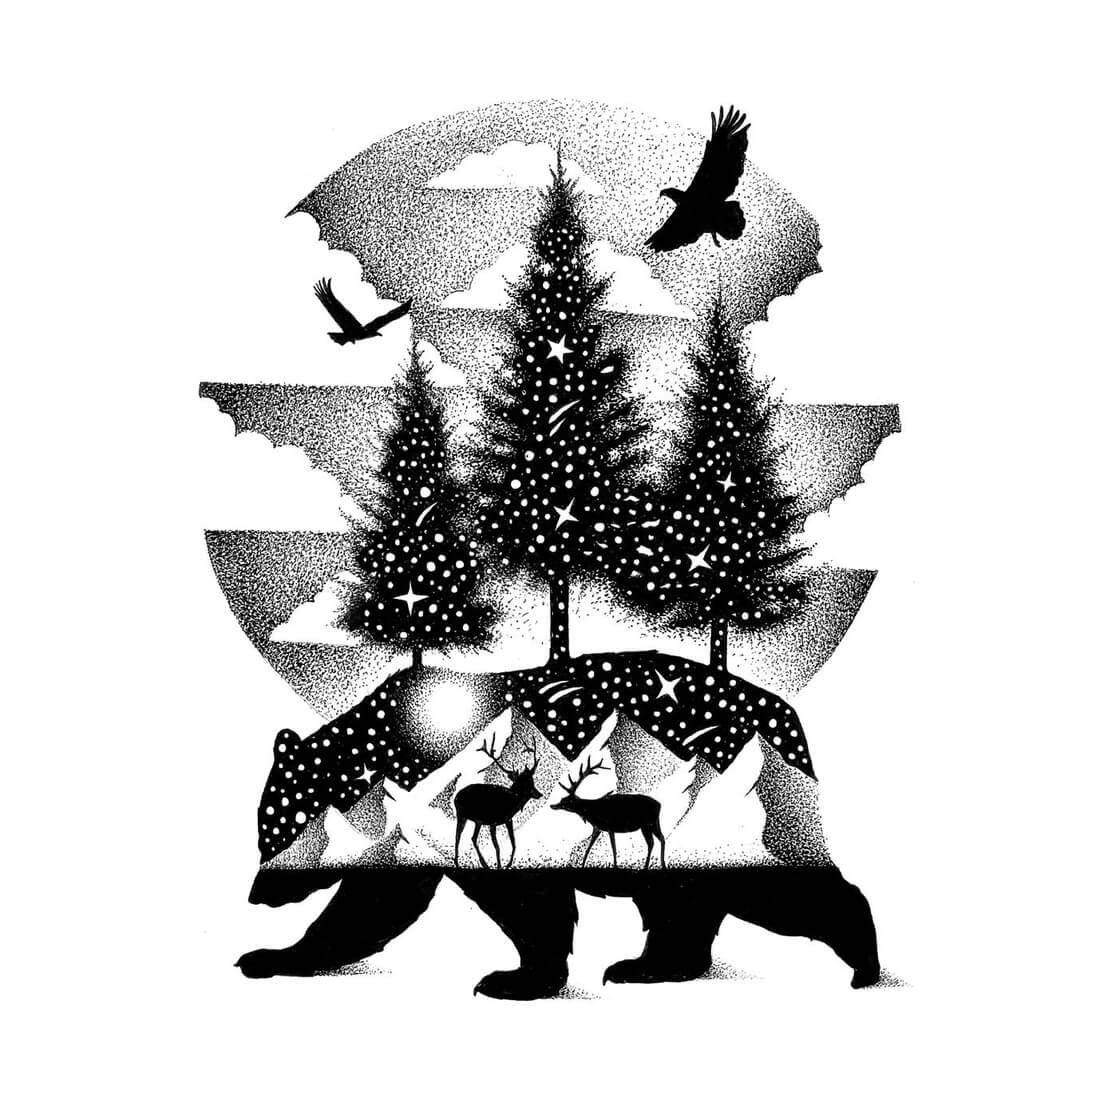 10-A-Night-In-Alaska-Bear-Deer-and-Eagles-Thiago-Bianchini-Ink-Animal-Drawings-Within-a-Drawing-www-designstack-co